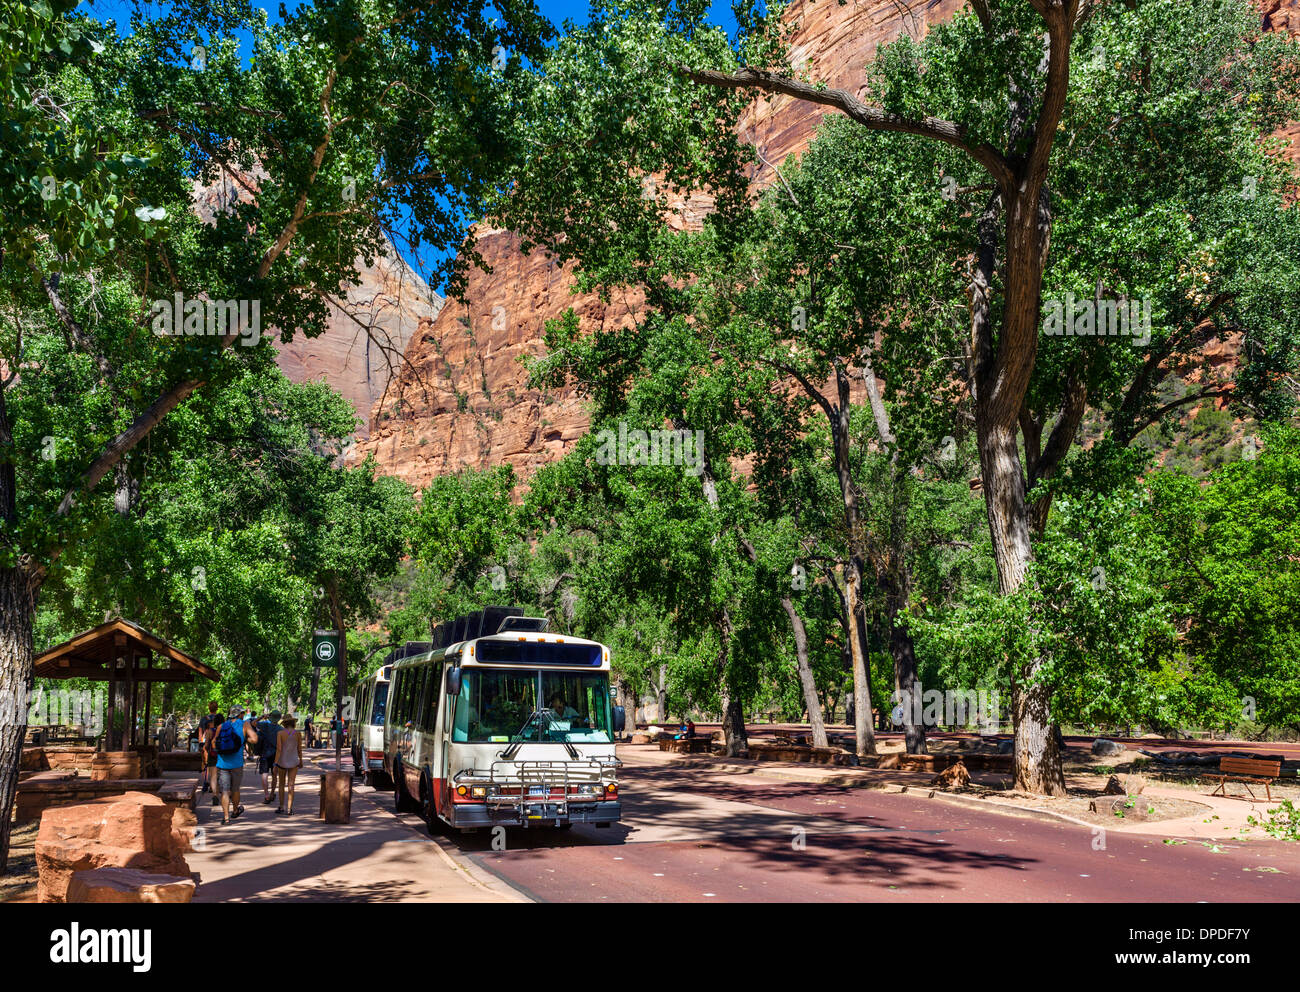 Tourists getting off the shuttle bus at The Grotto, Zion Canyon, Zion National Park, Utah, USA - Stock Image